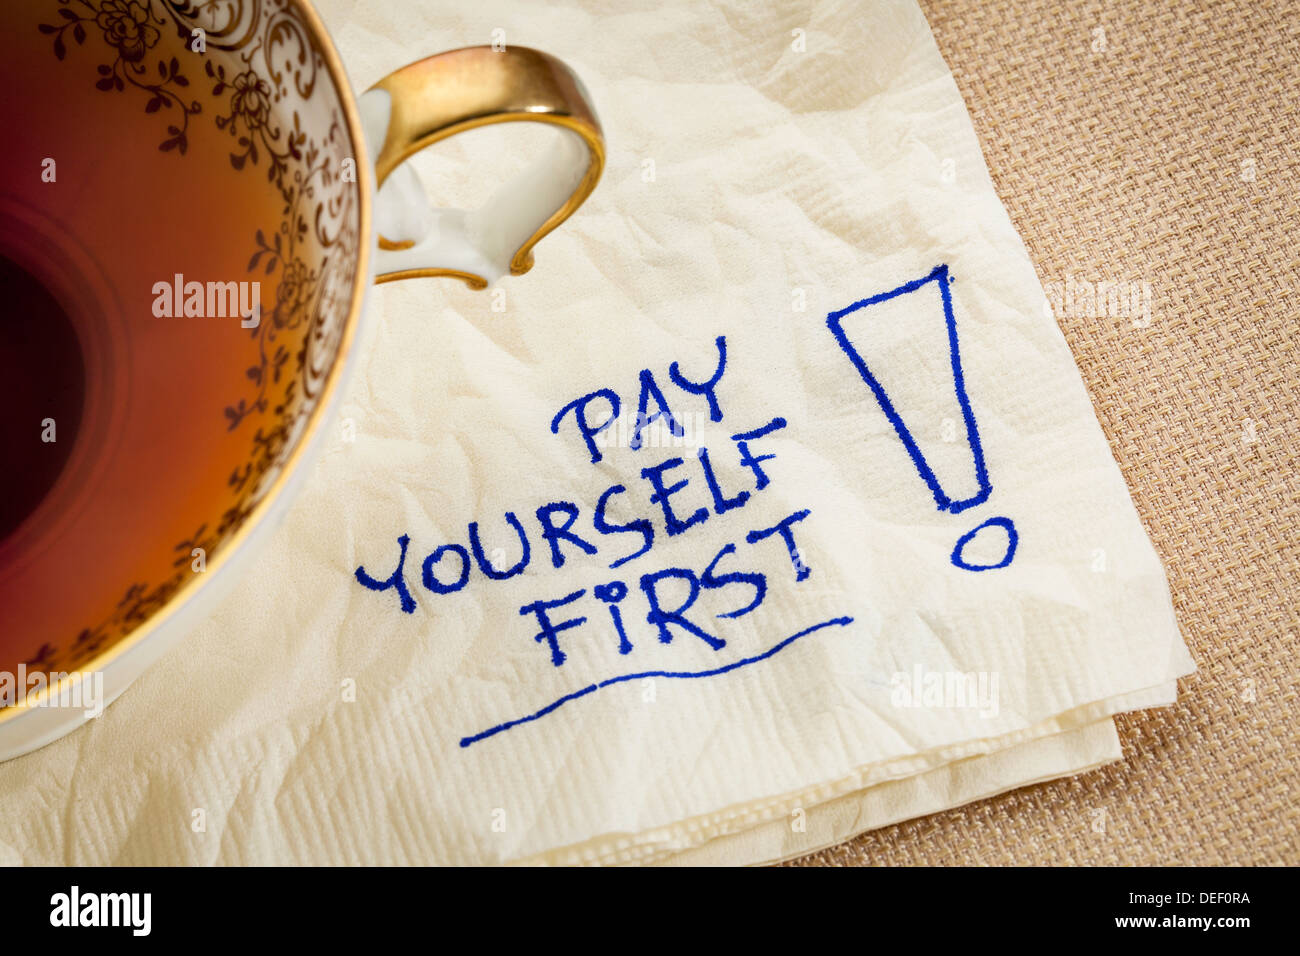 pay yourself first, a reminder of personal finance strategy - a napkin doodle with a tea cup - Stock Image